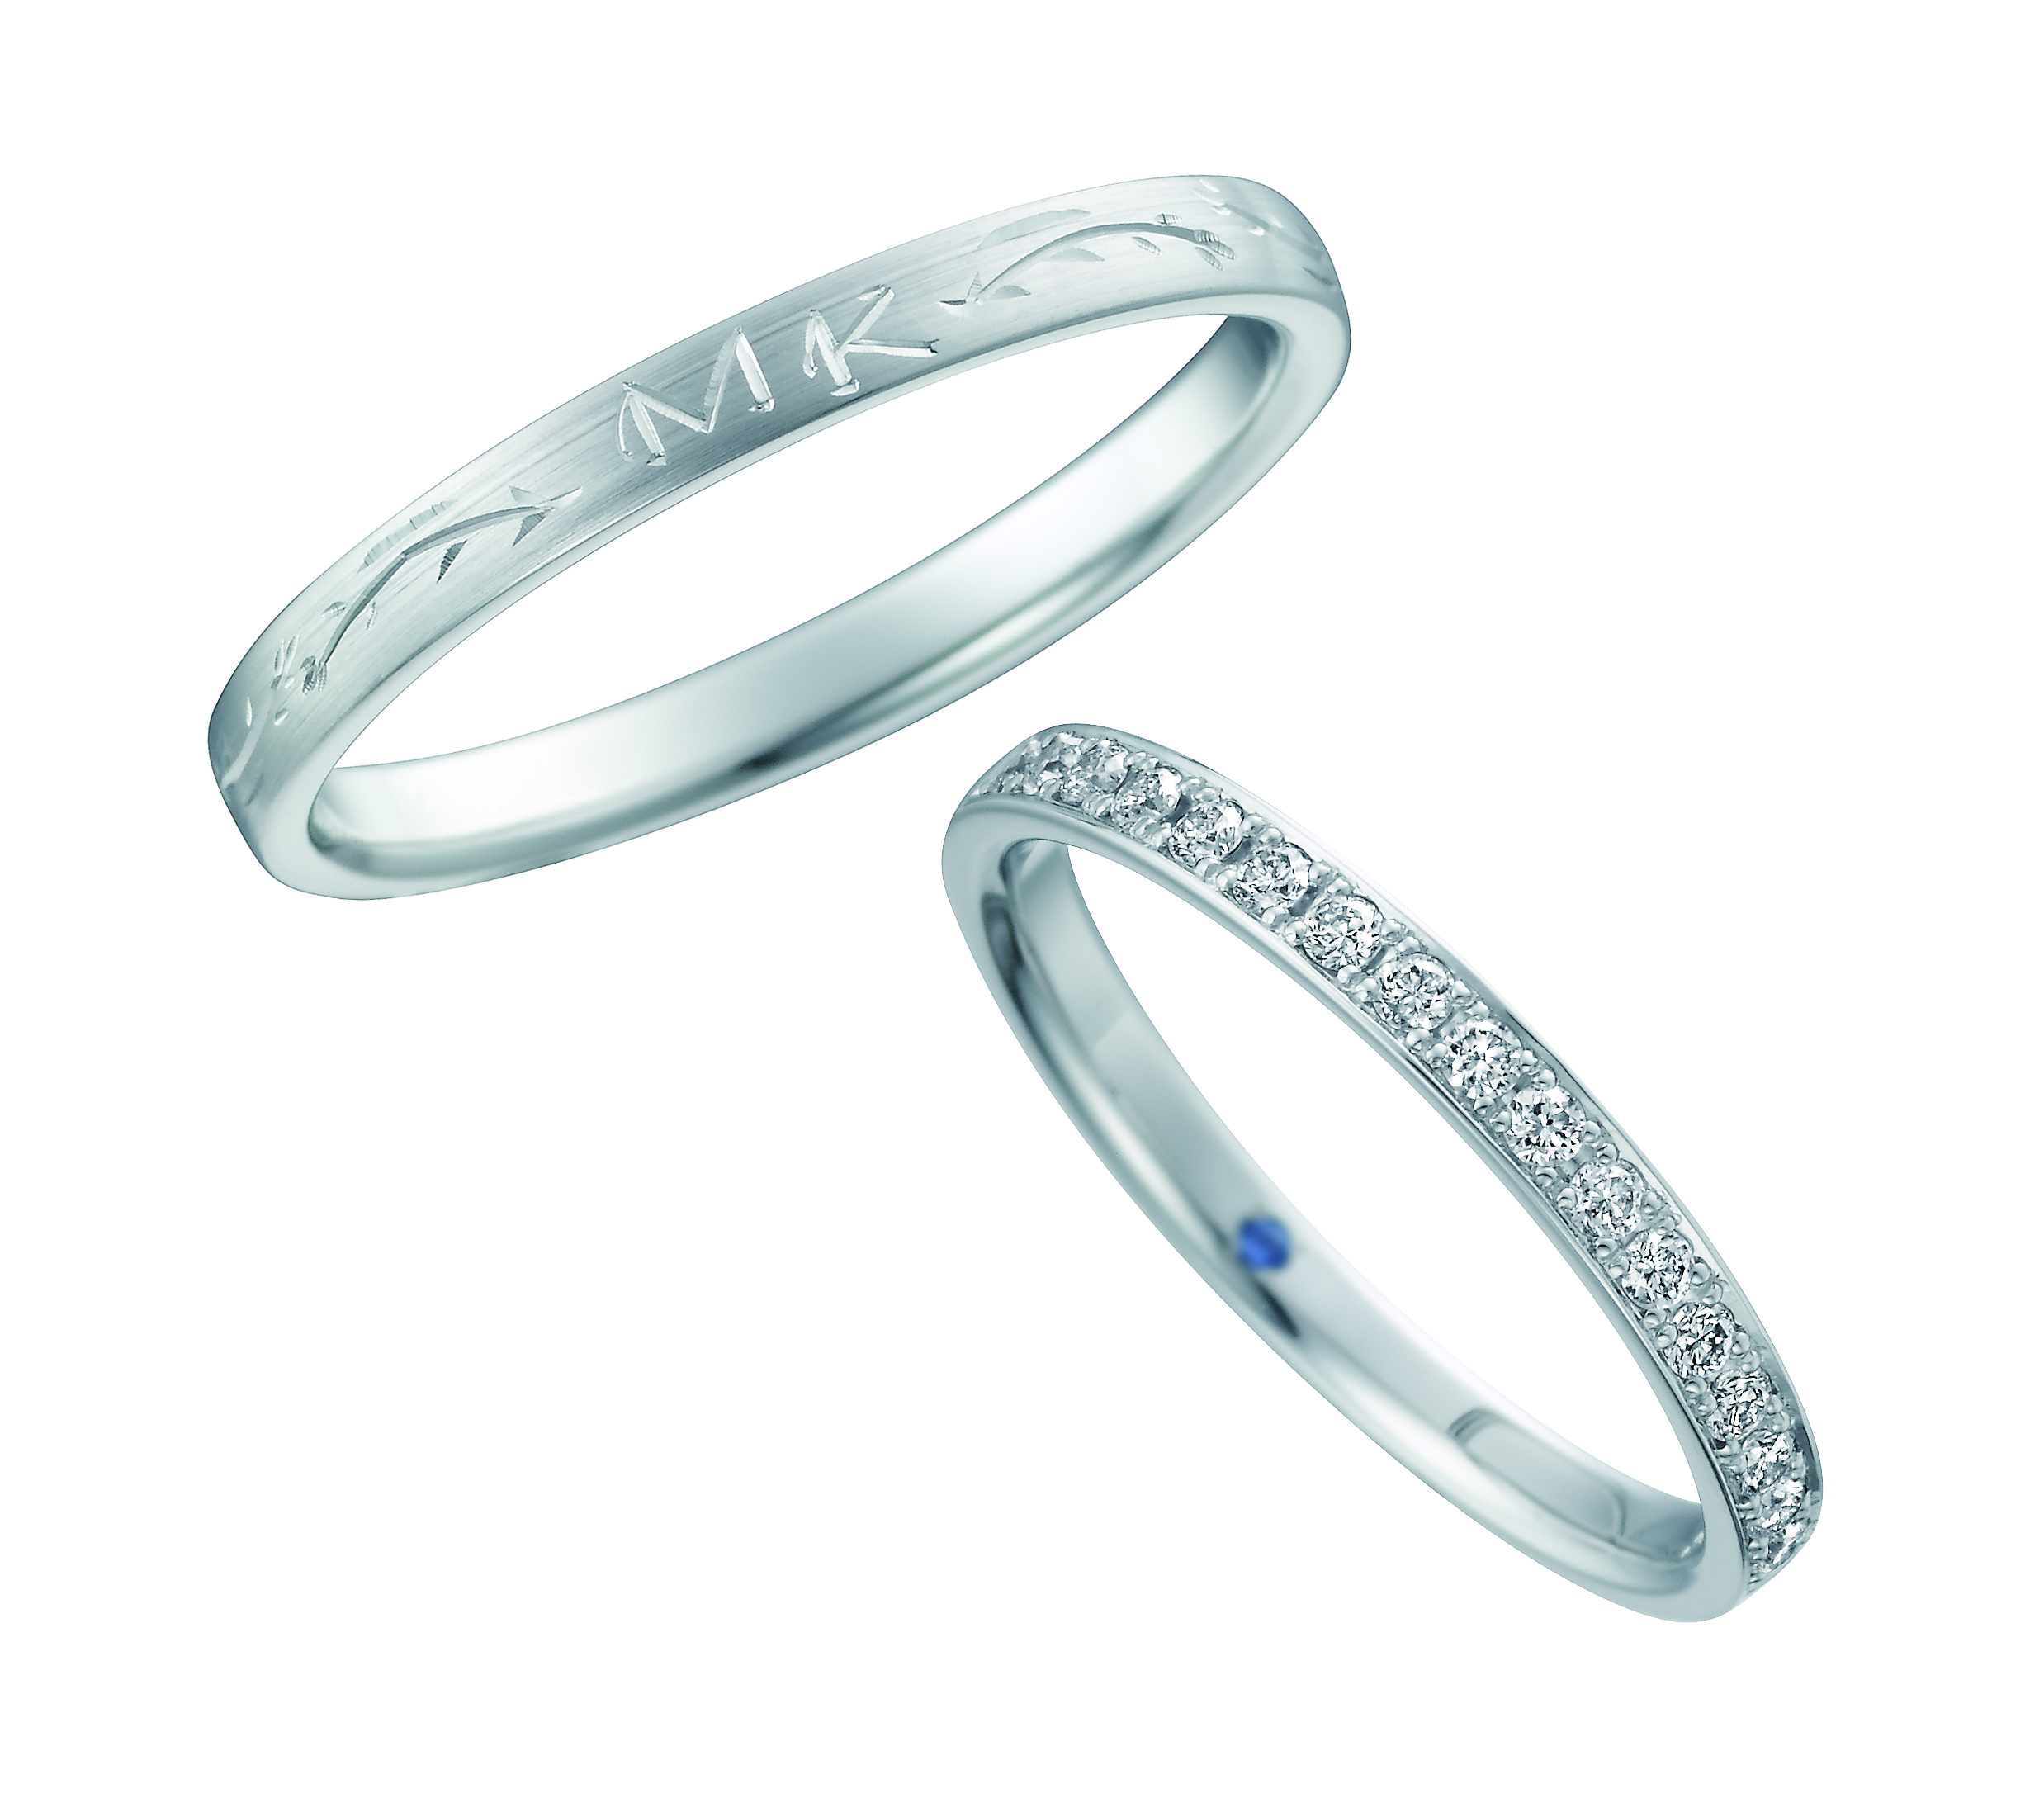 Wedding Bands - Singapore:SB-830/SB-831_02